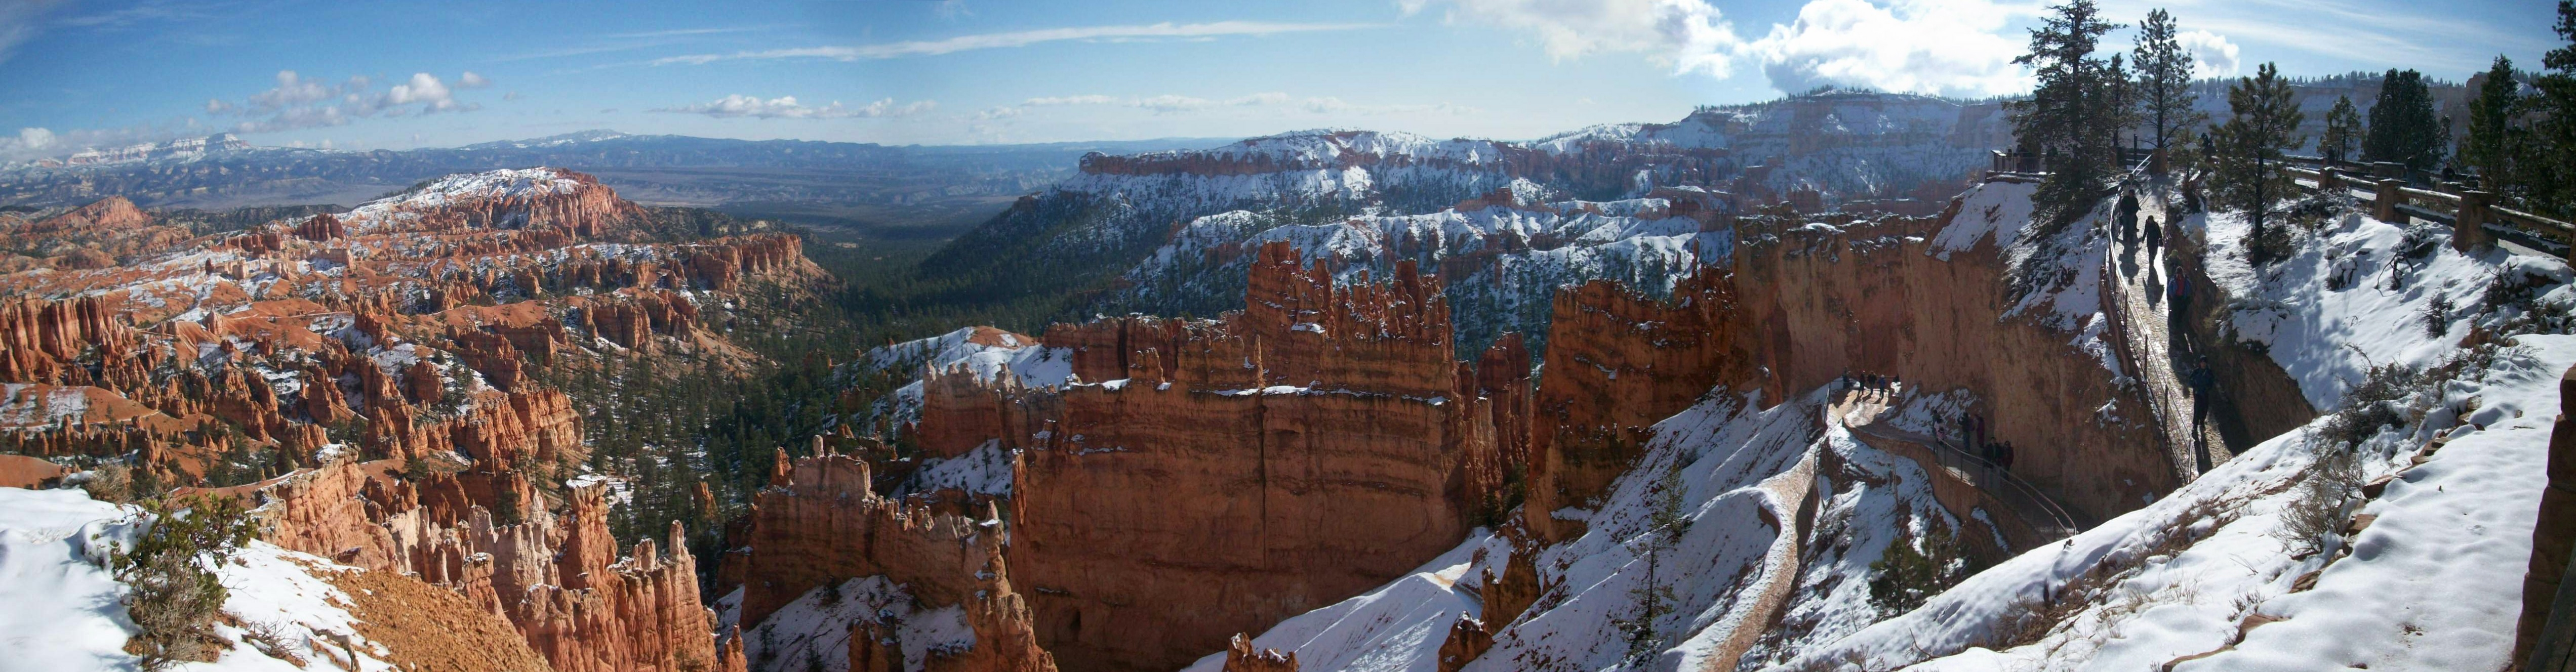 Day after thanksgiving 2008, Bryce Canyon, Utah